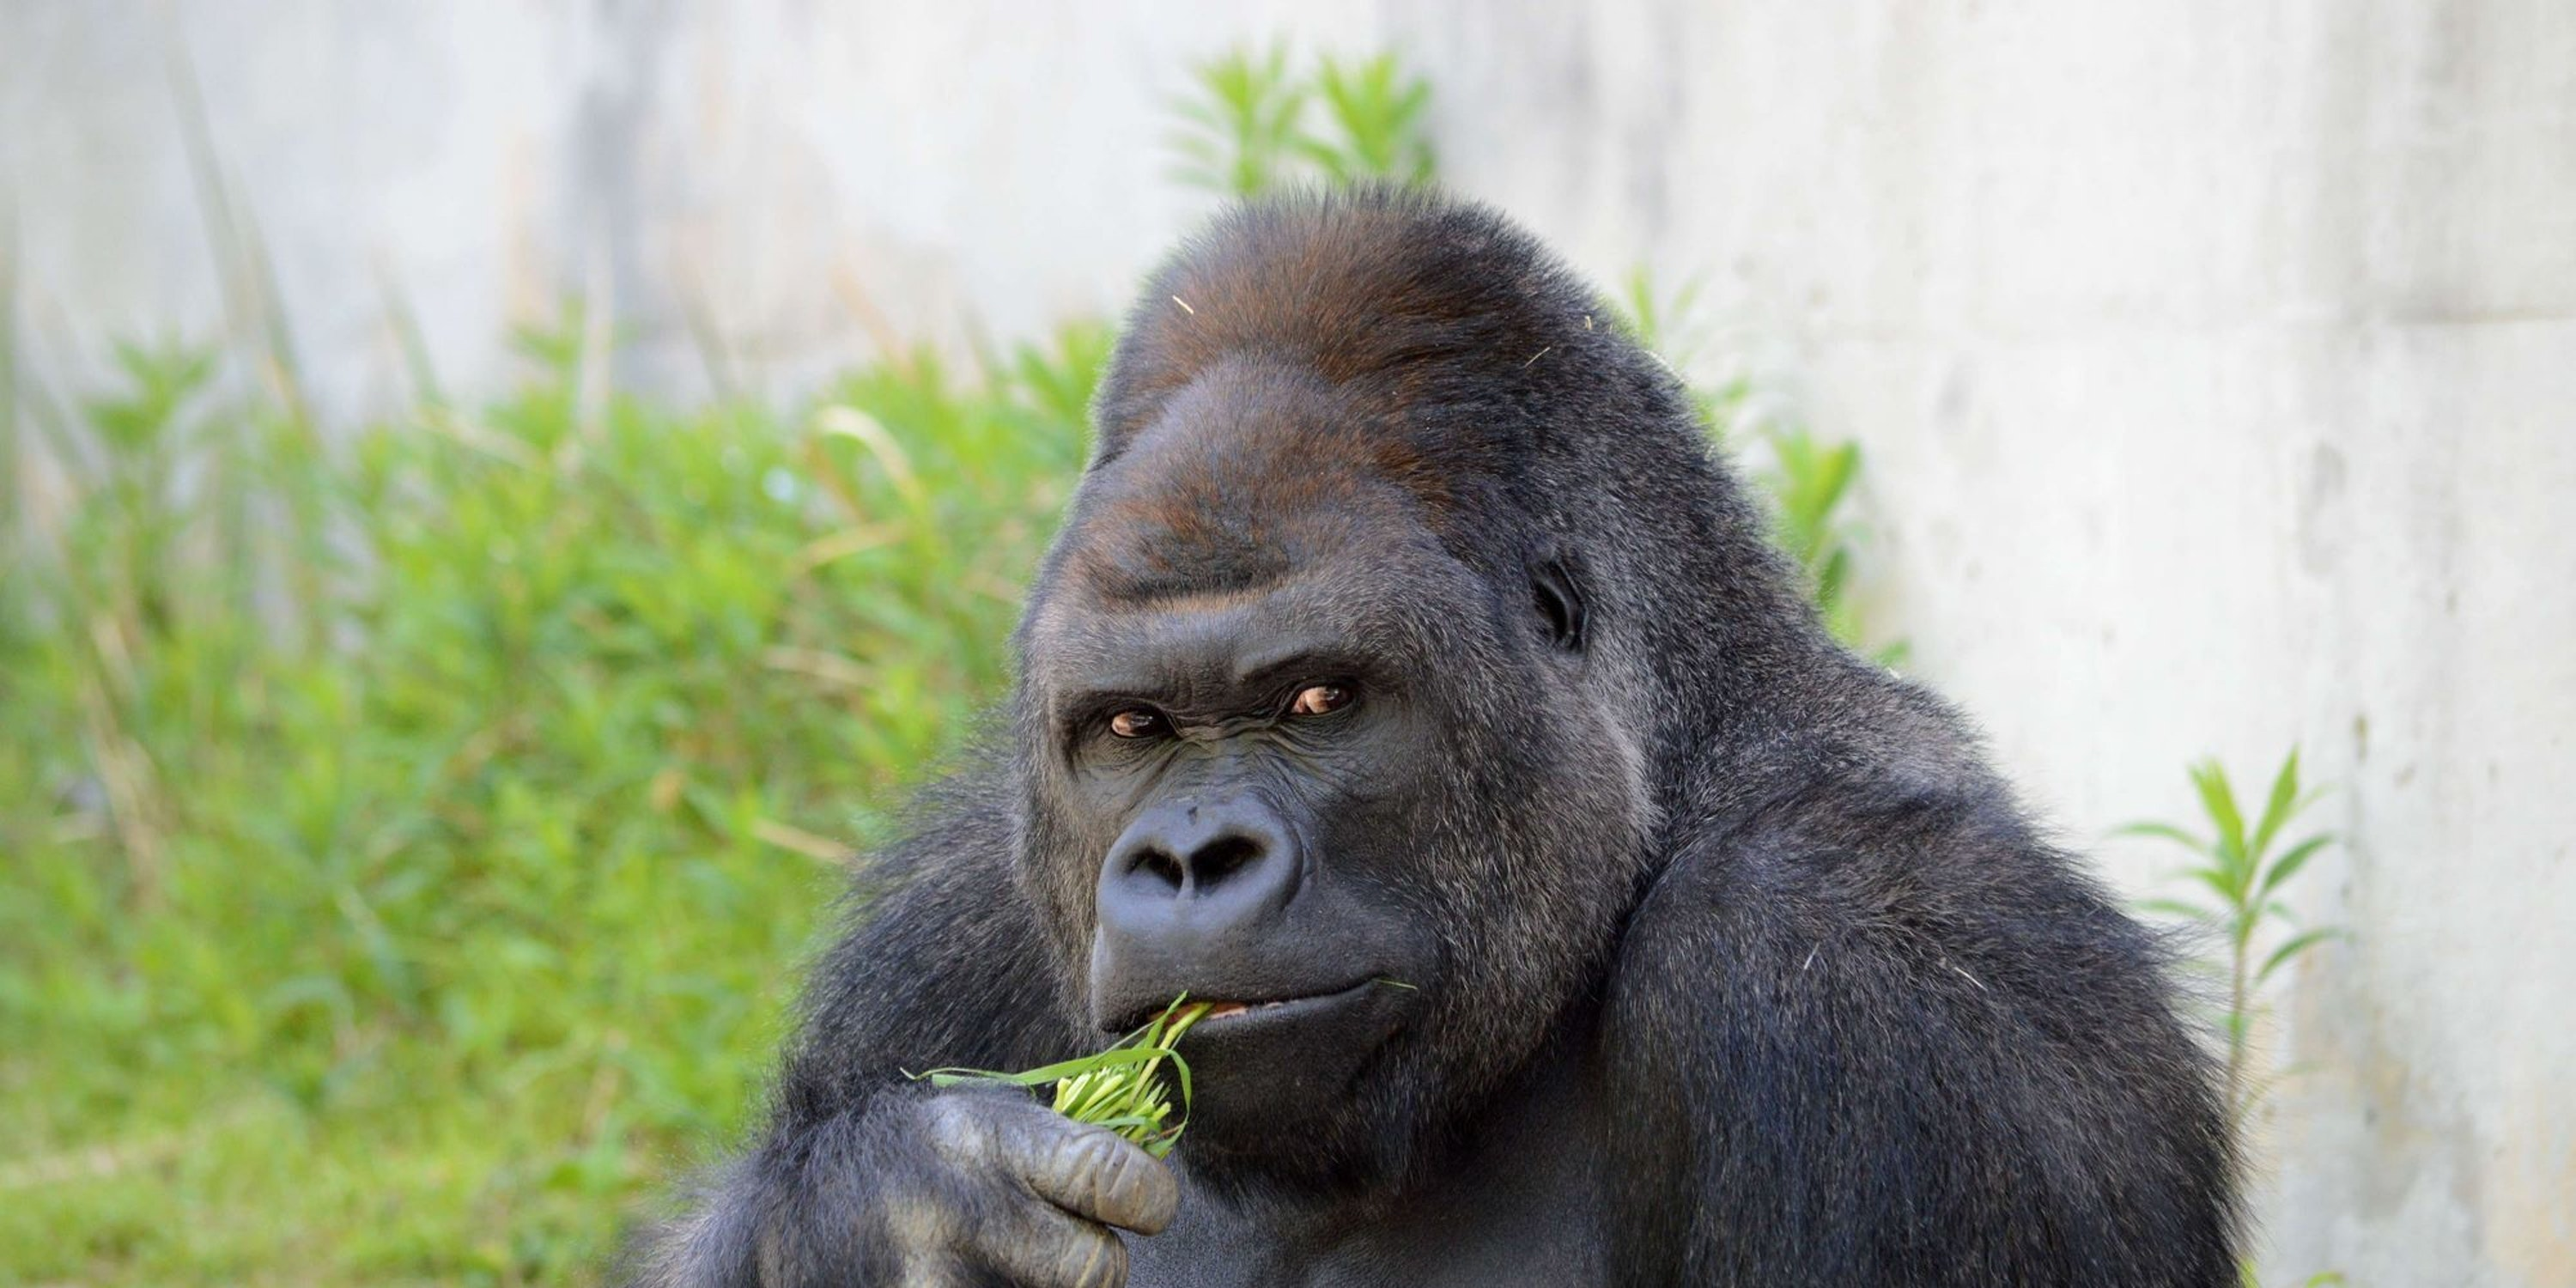 The Scientific Reason the Internet Wants to Bang This Handsome Gorilla